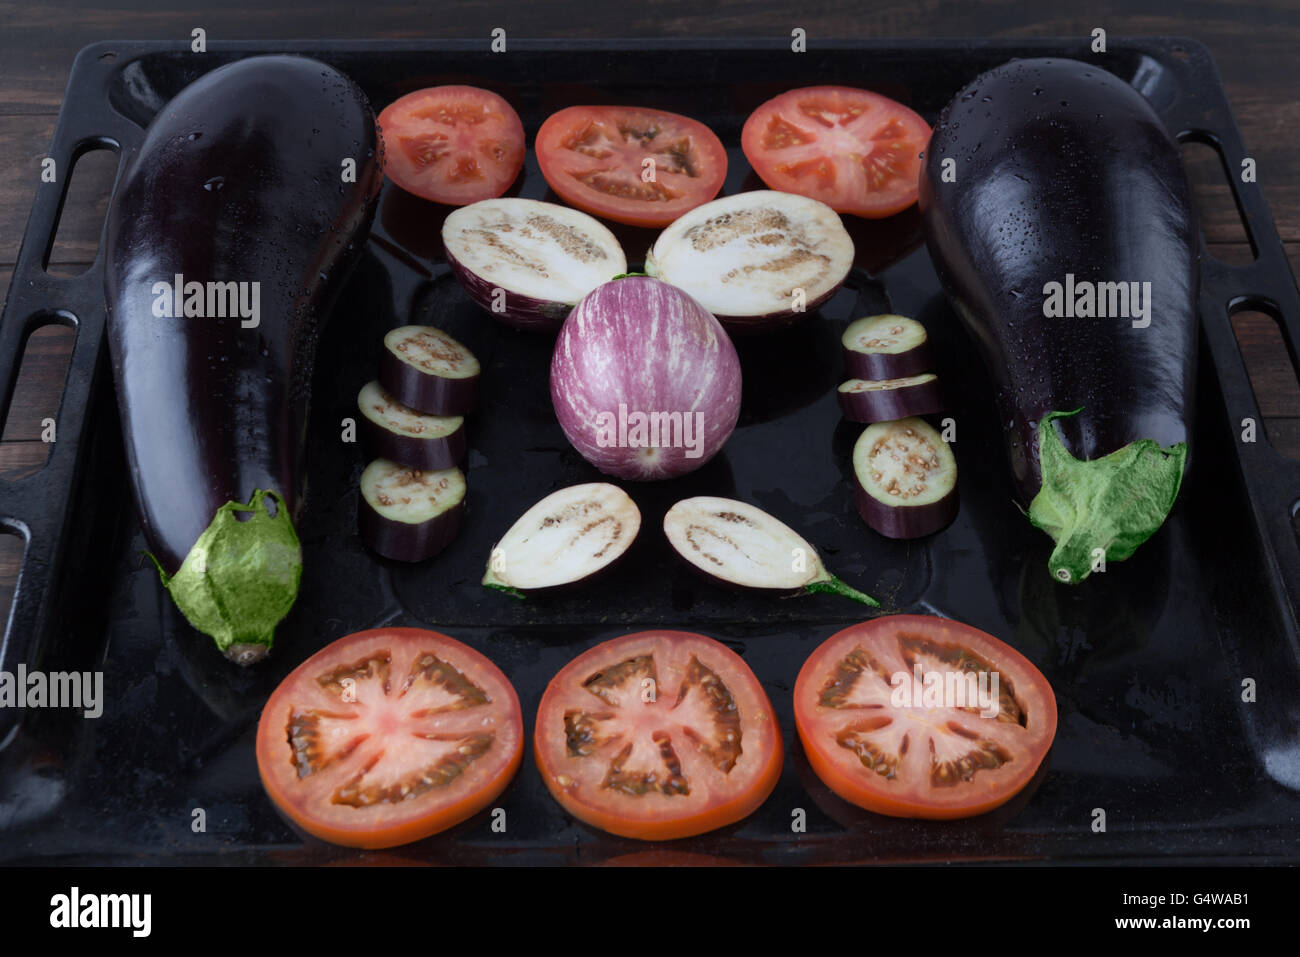 Whole and sliced eggplants and tomatoes on rustic baking tray. Shallow depth of field - Stock Image